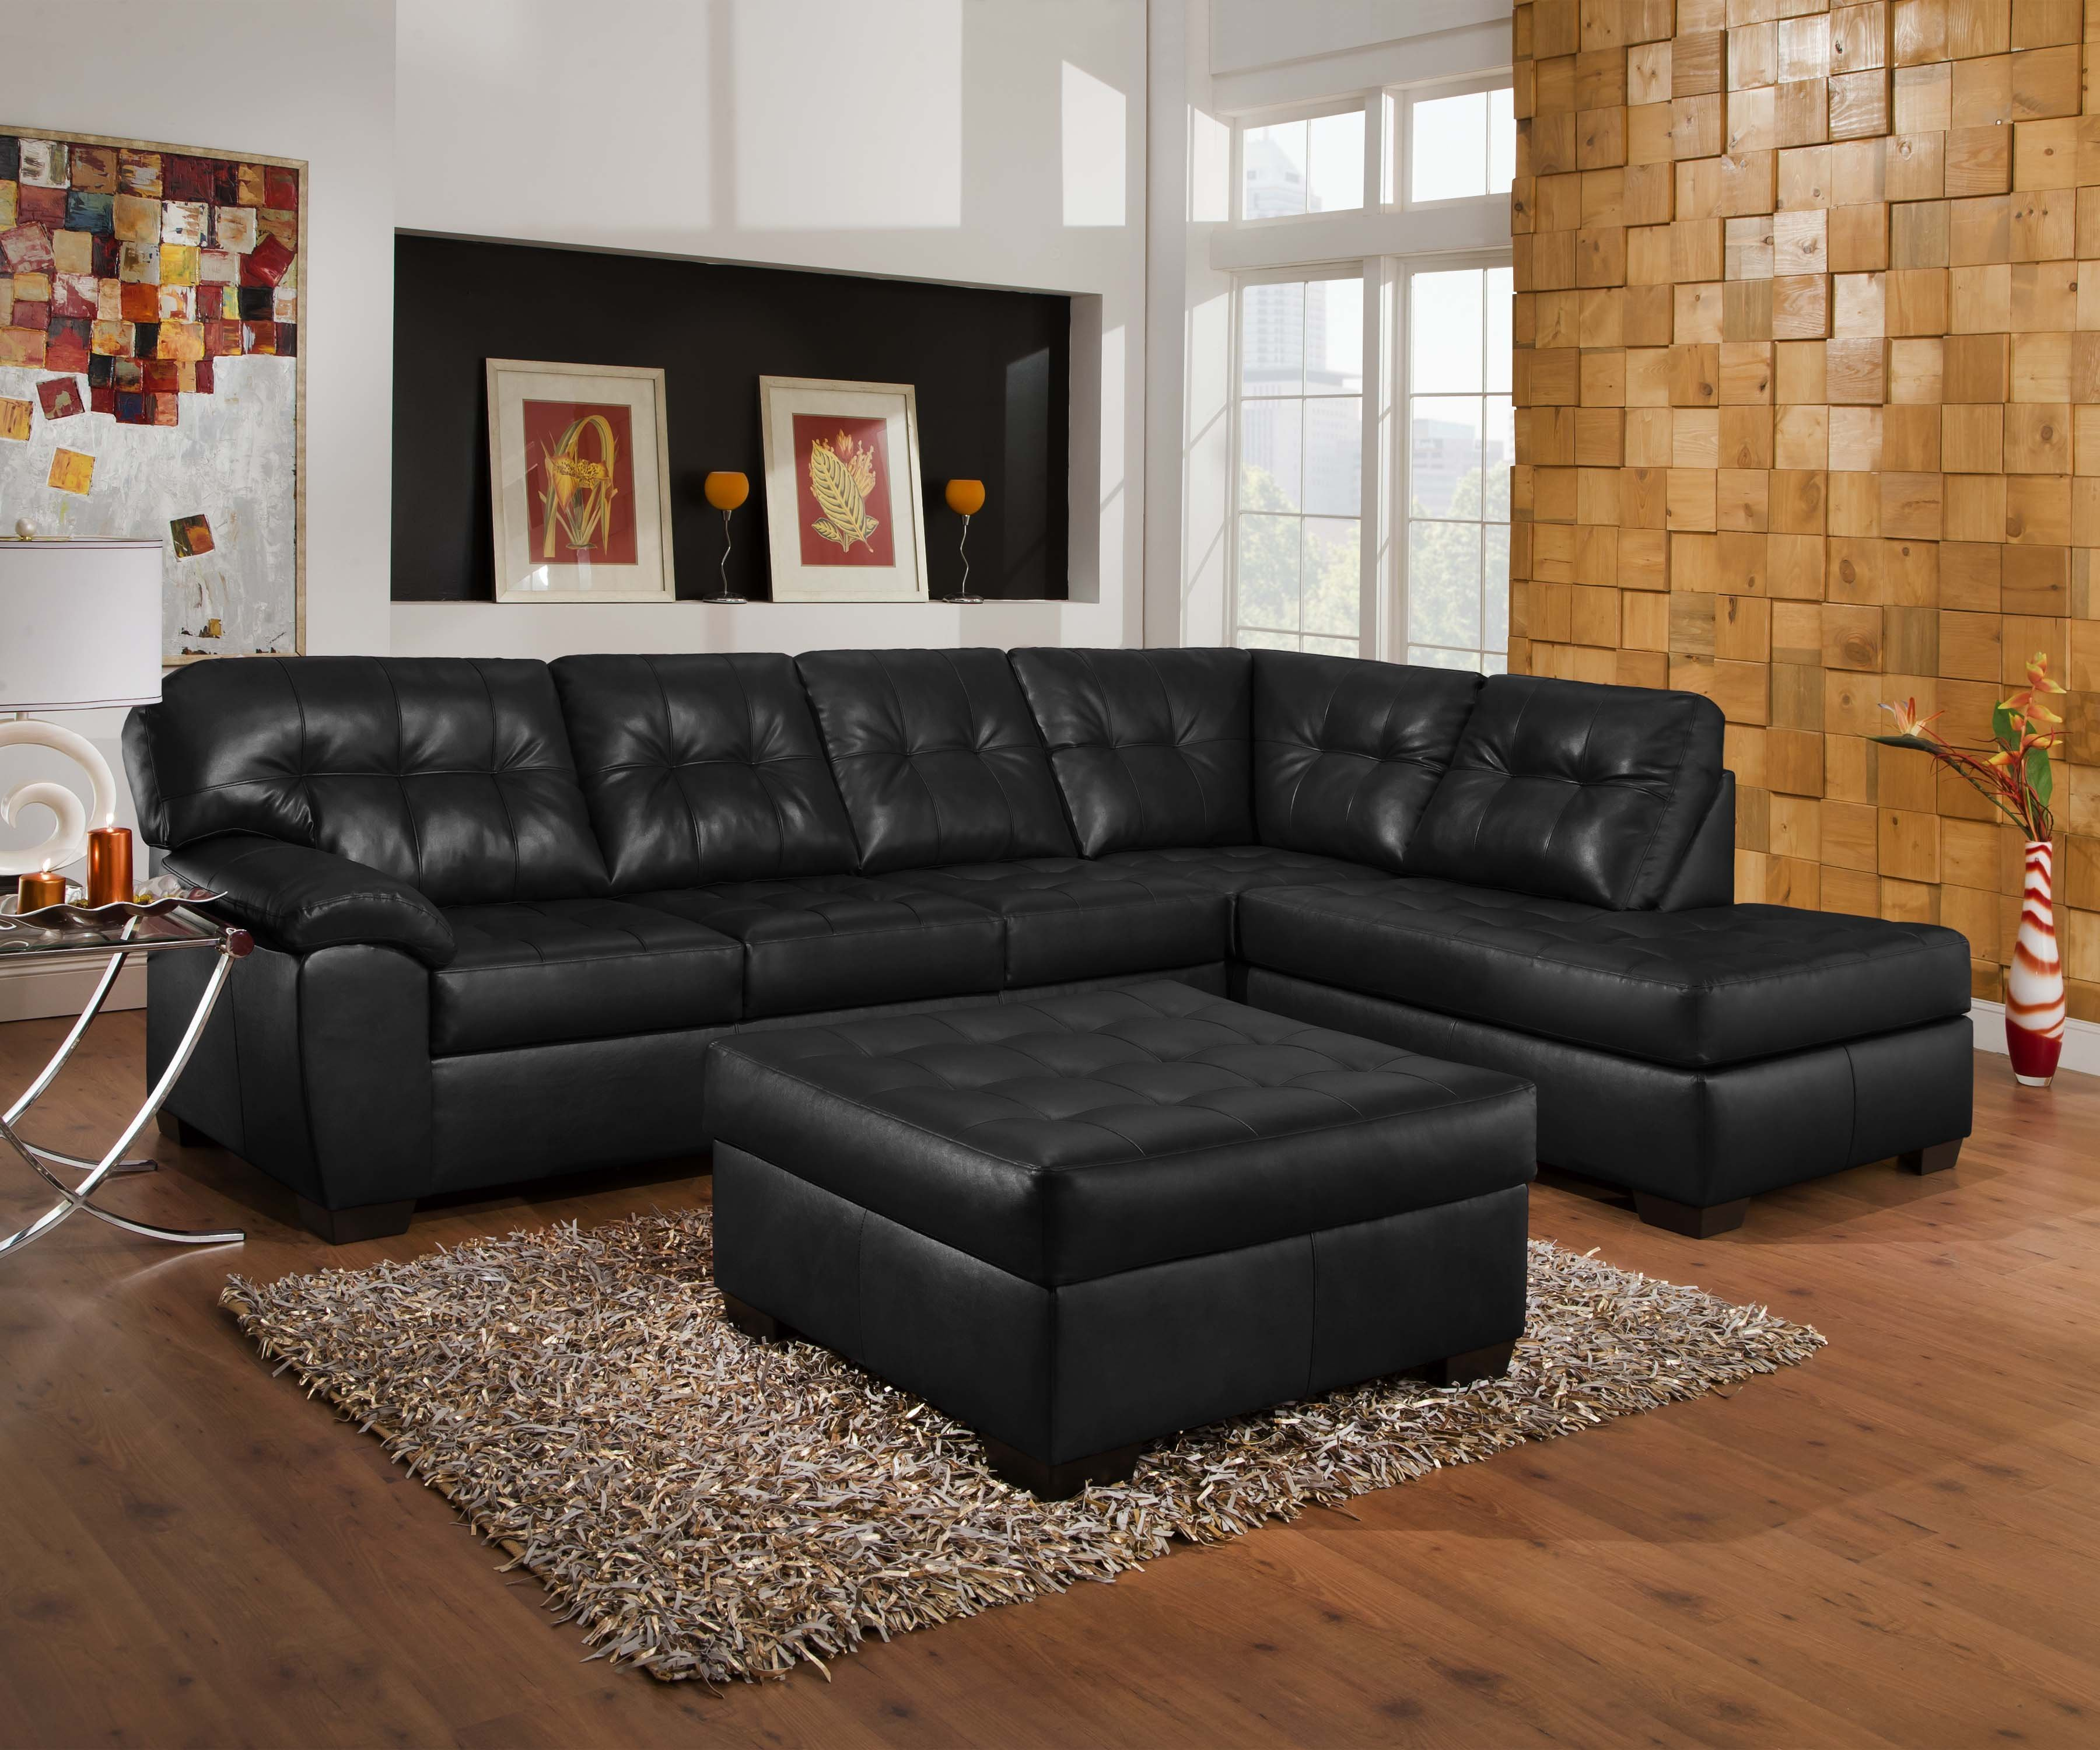 overstock clearance sale – springfield furniture direct